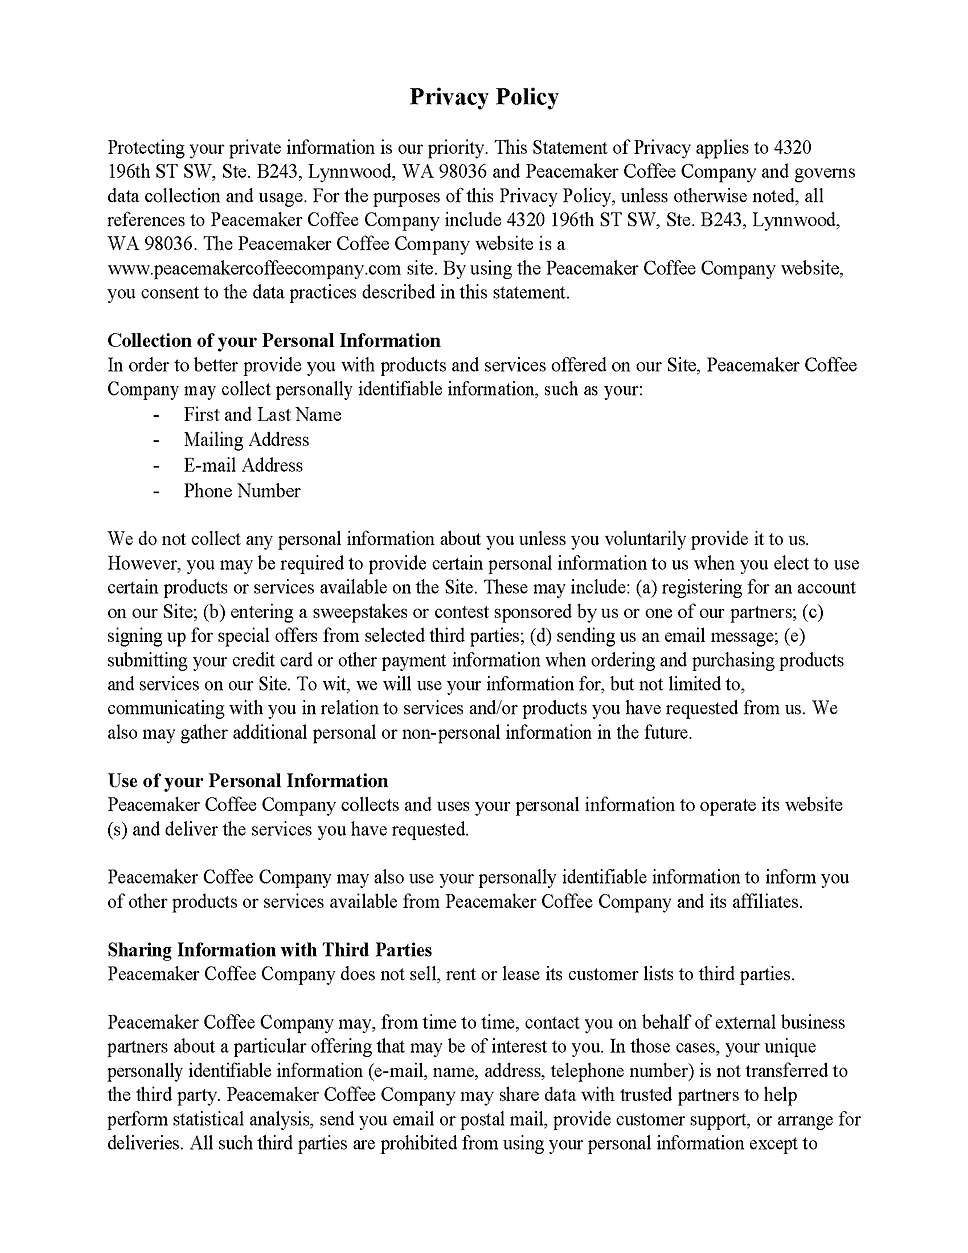 PCC Online Privacy Policy_Page_1.png